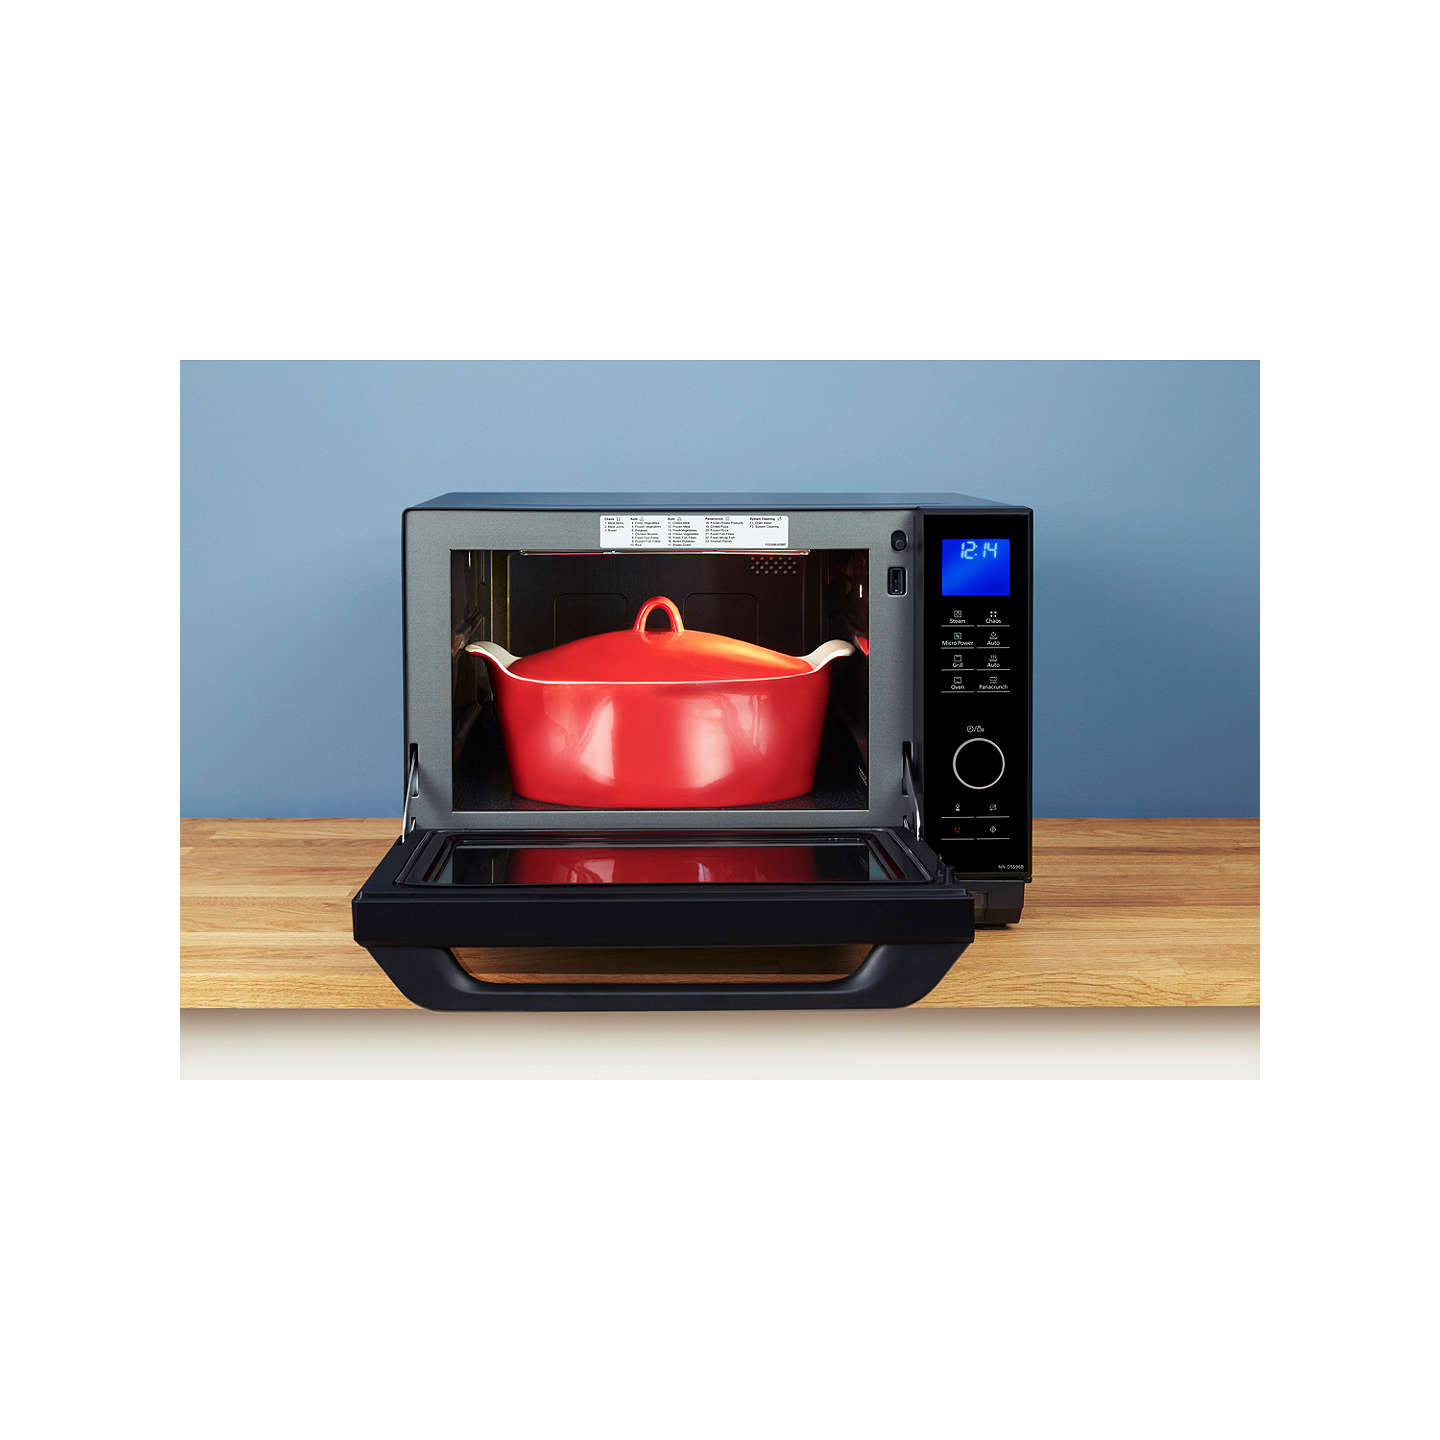 Freestanding Combination Microwave Oven Bestmicrowave